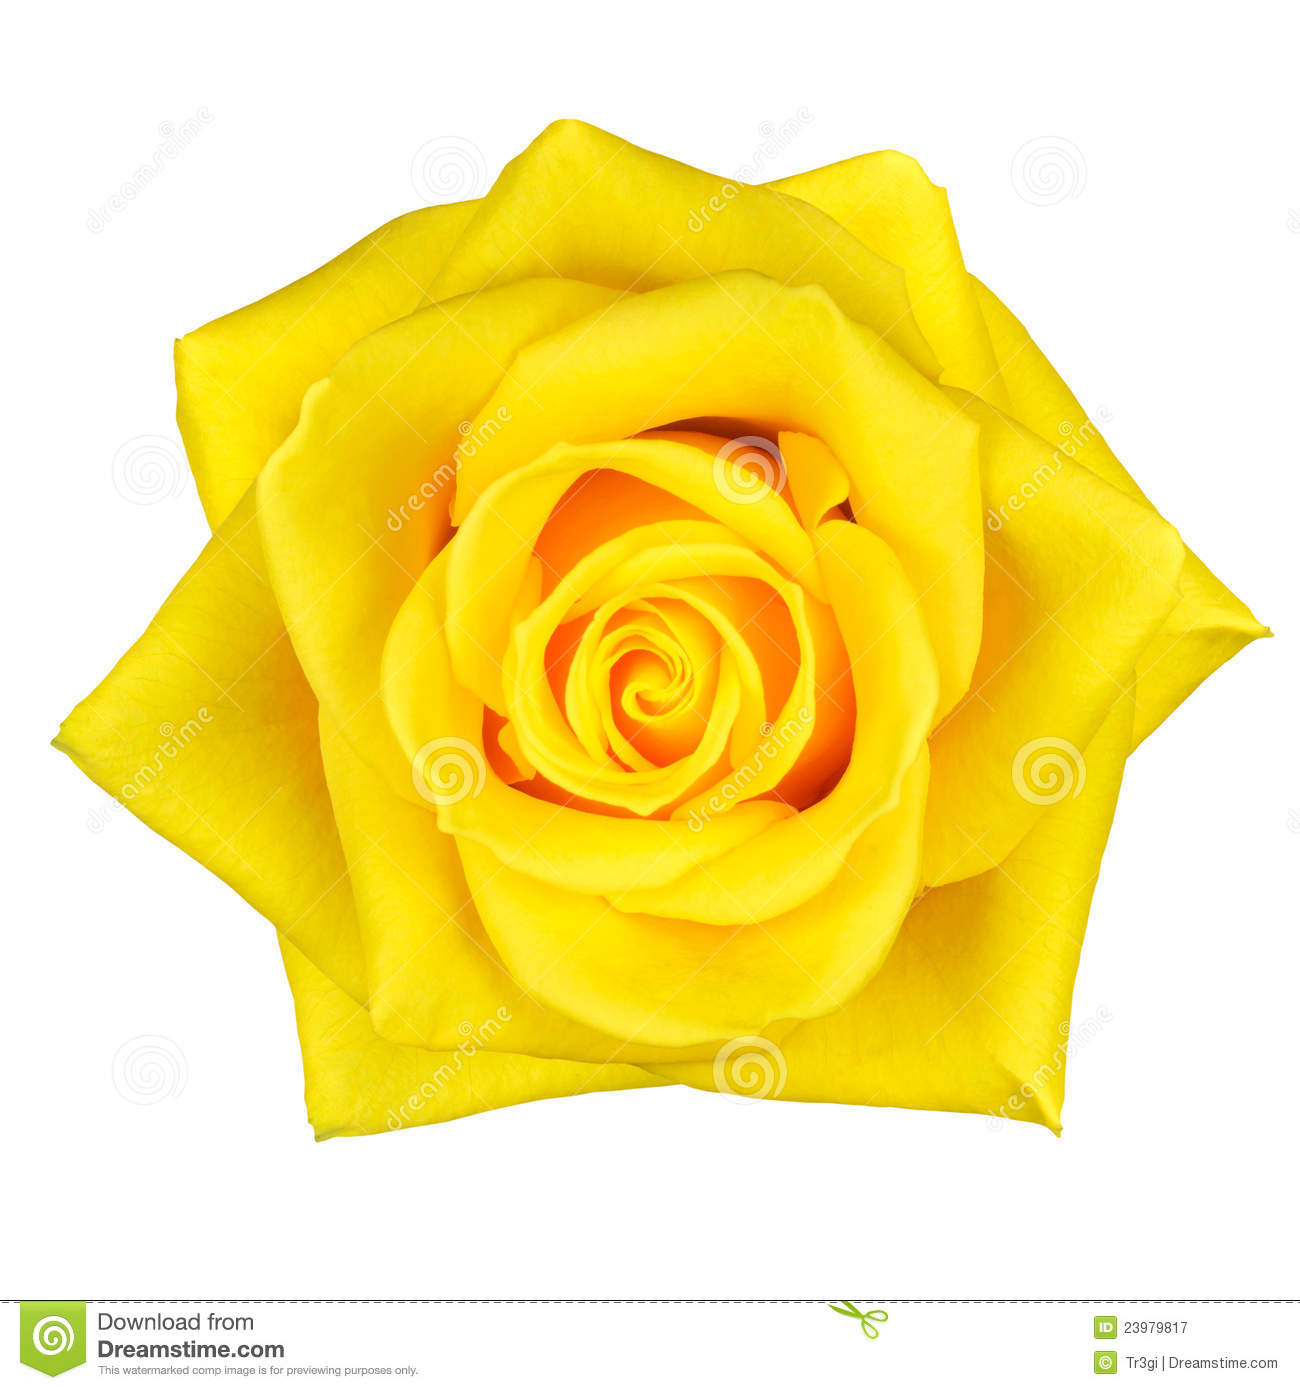 Yellow Rose Images Clip Art Beautiful Ye-Yellow Rose Images Clip Art Beautiful Yellow Rose Flower-15